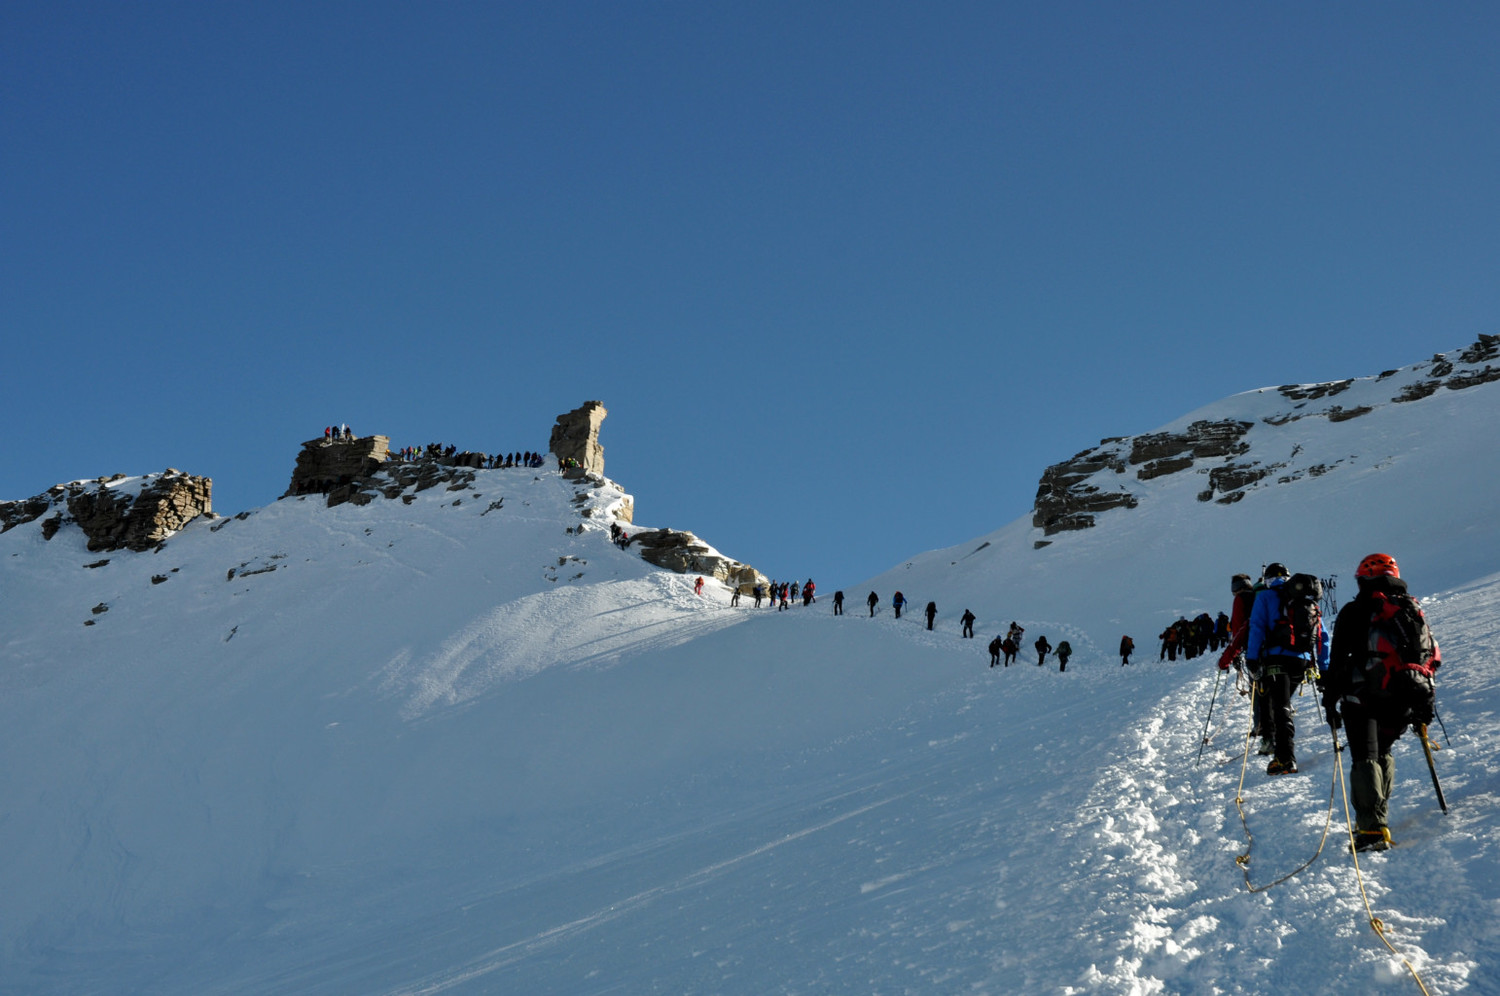 Gran Paradiso - Via normale : the last slope (busy!)